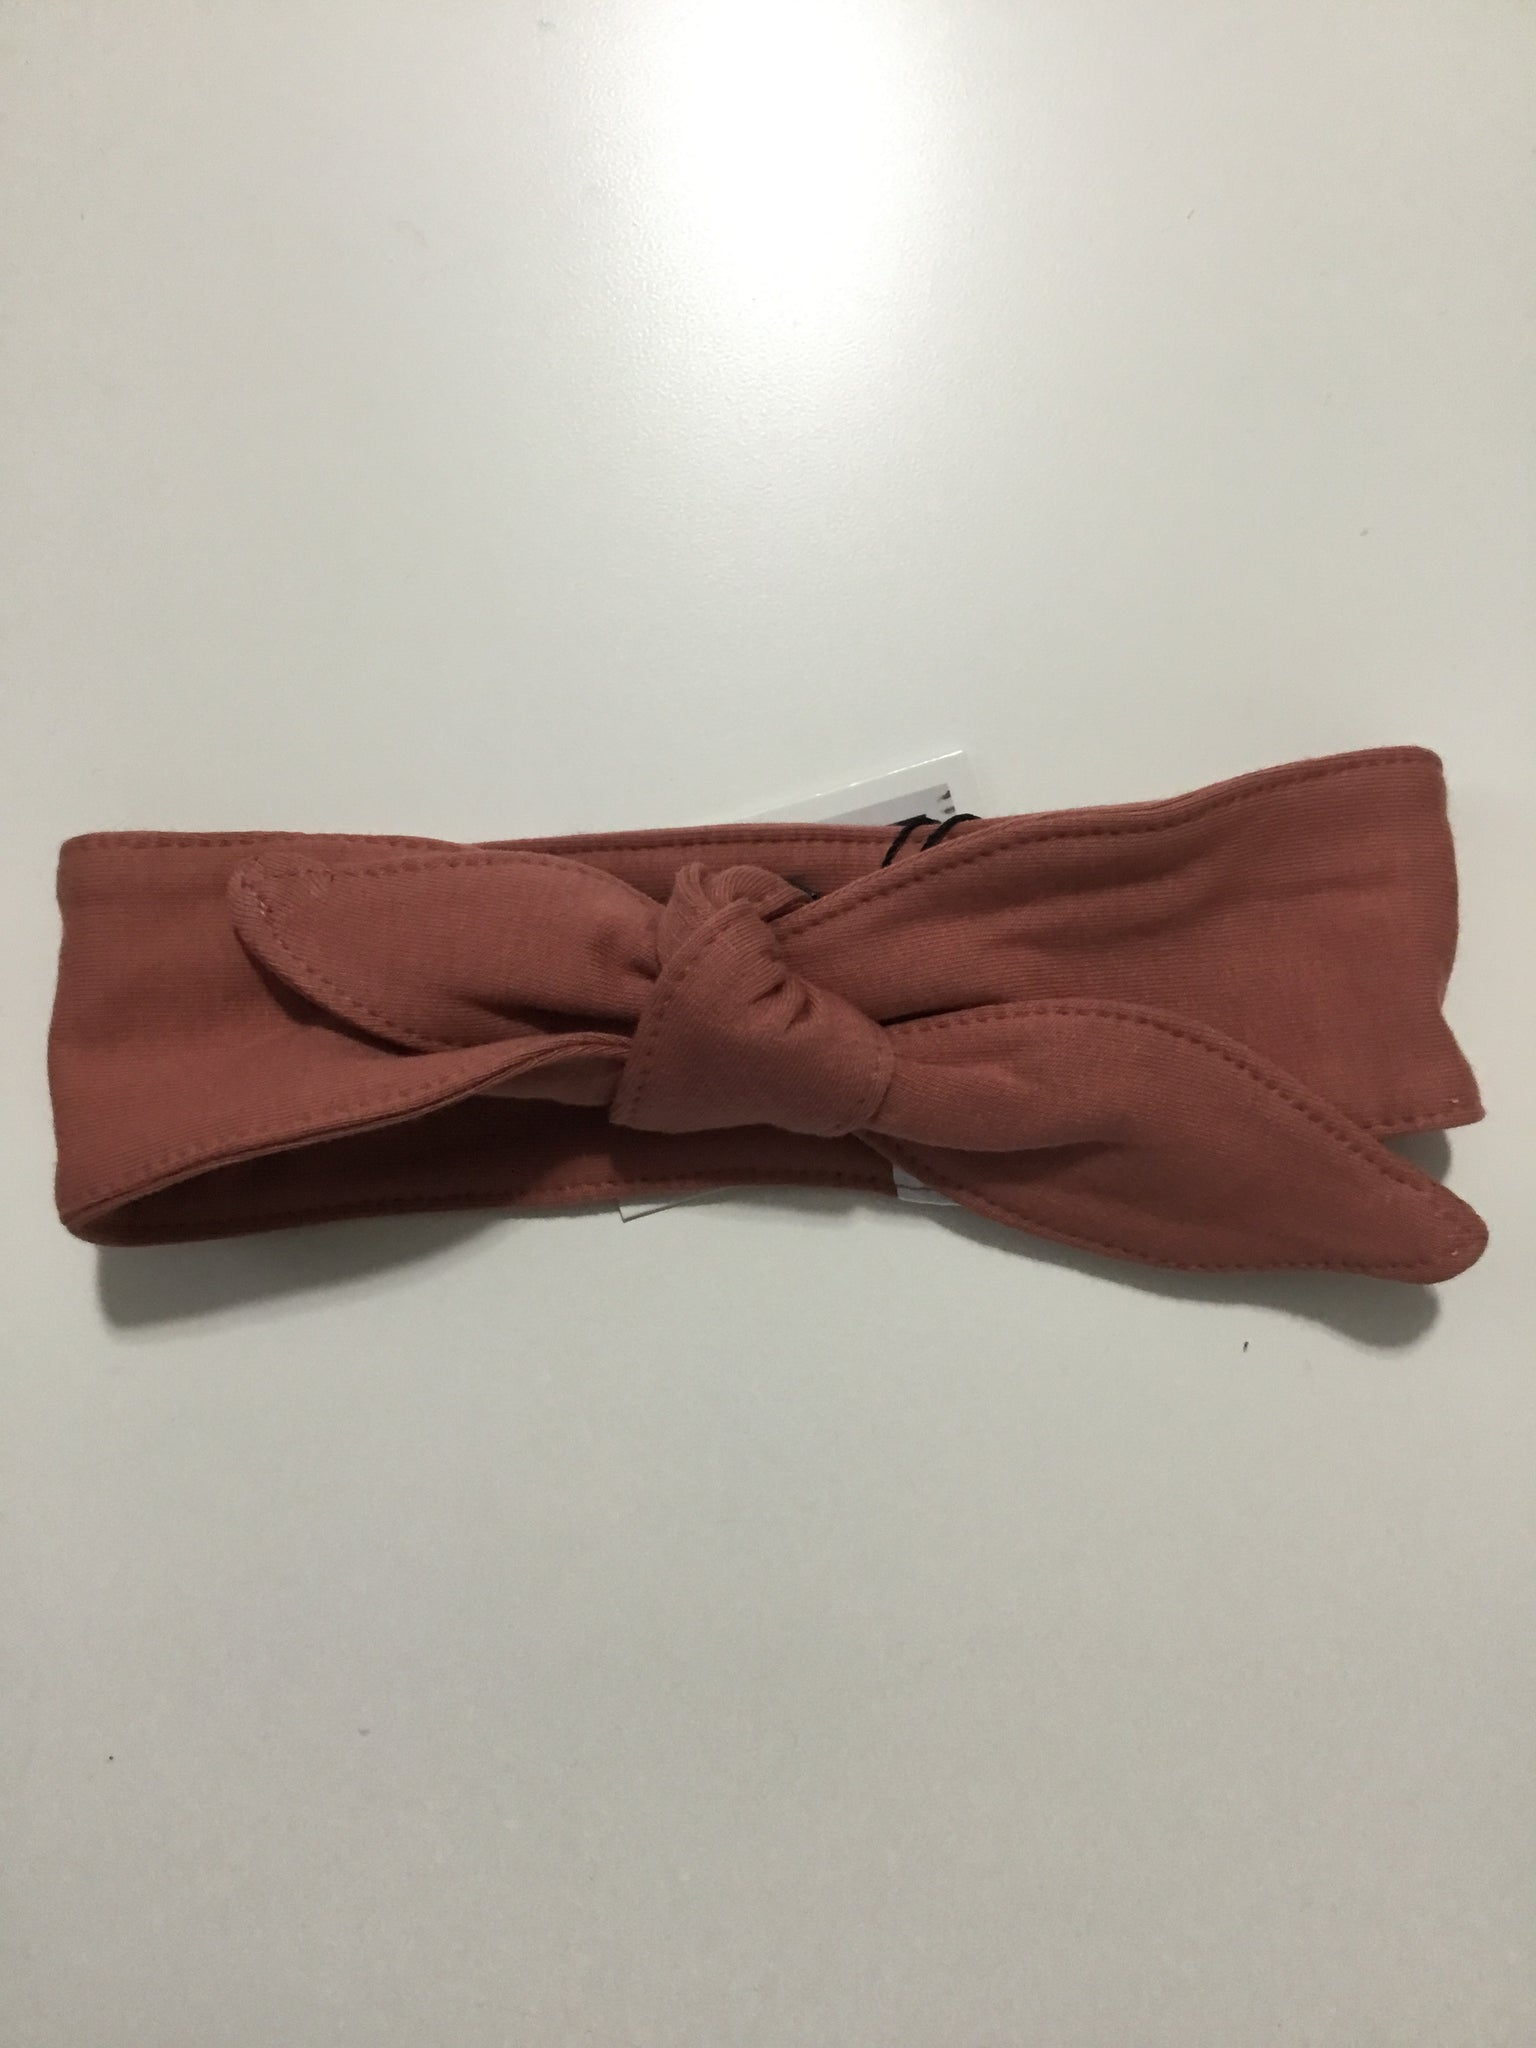 Little indians rose headband